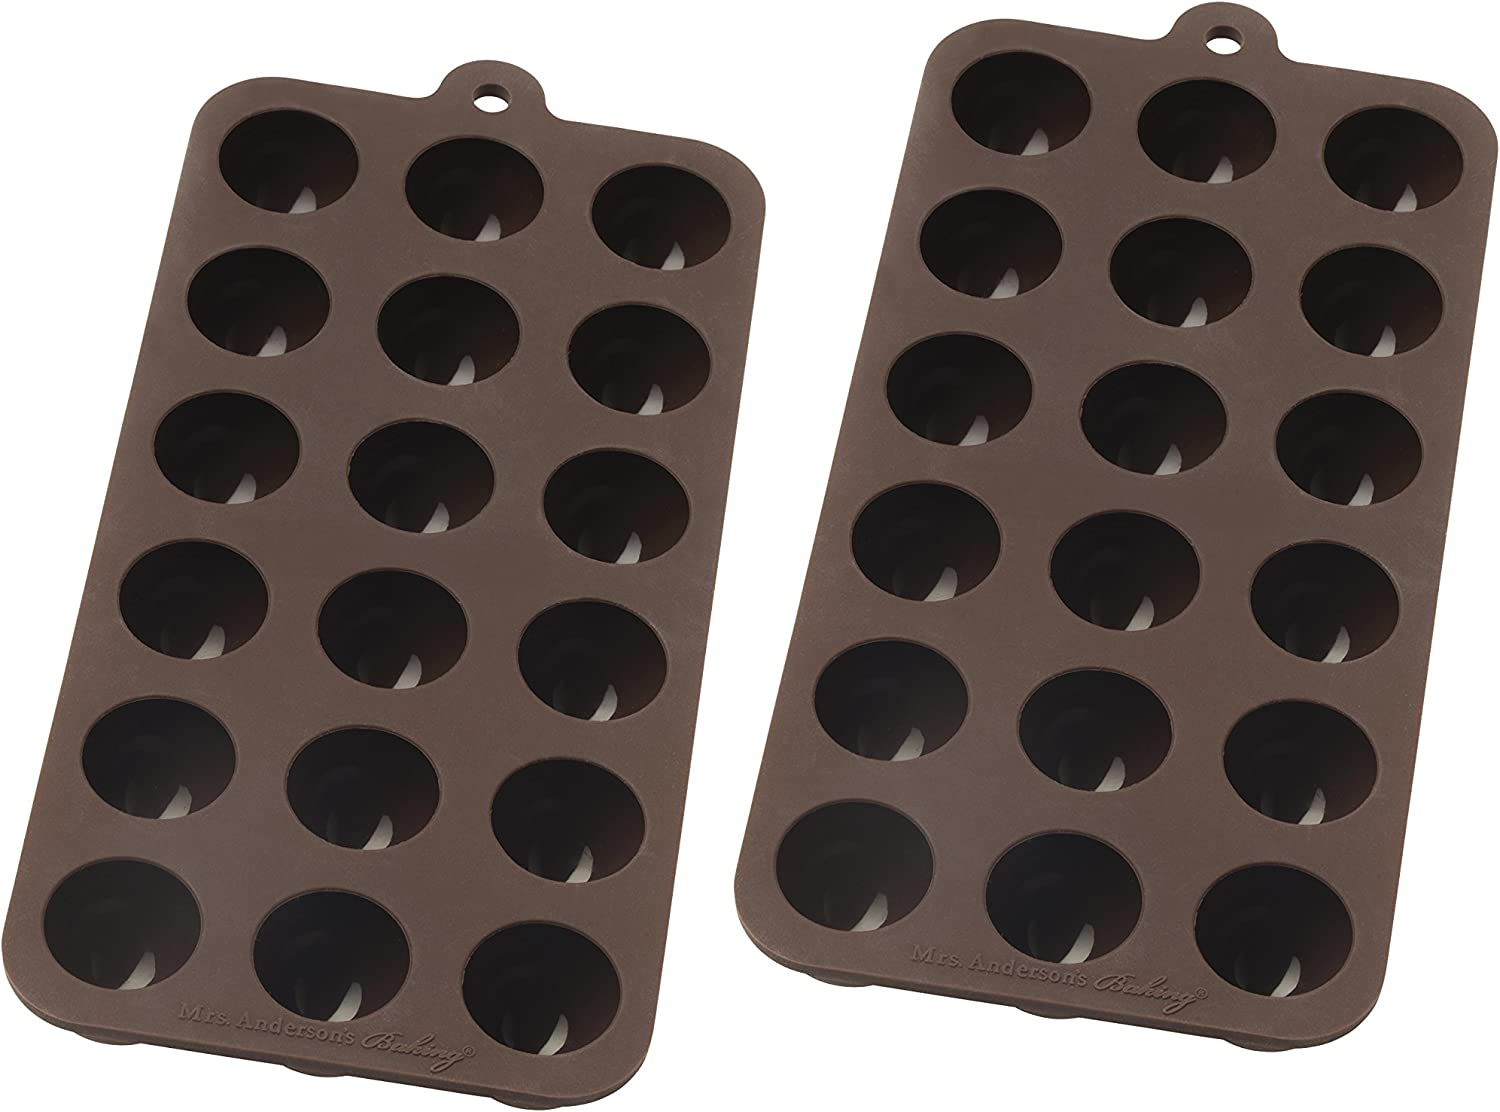 Mrs. Anderson's Baking 43763/2 Truffle Chocolate Mold, Set of 2, Brown